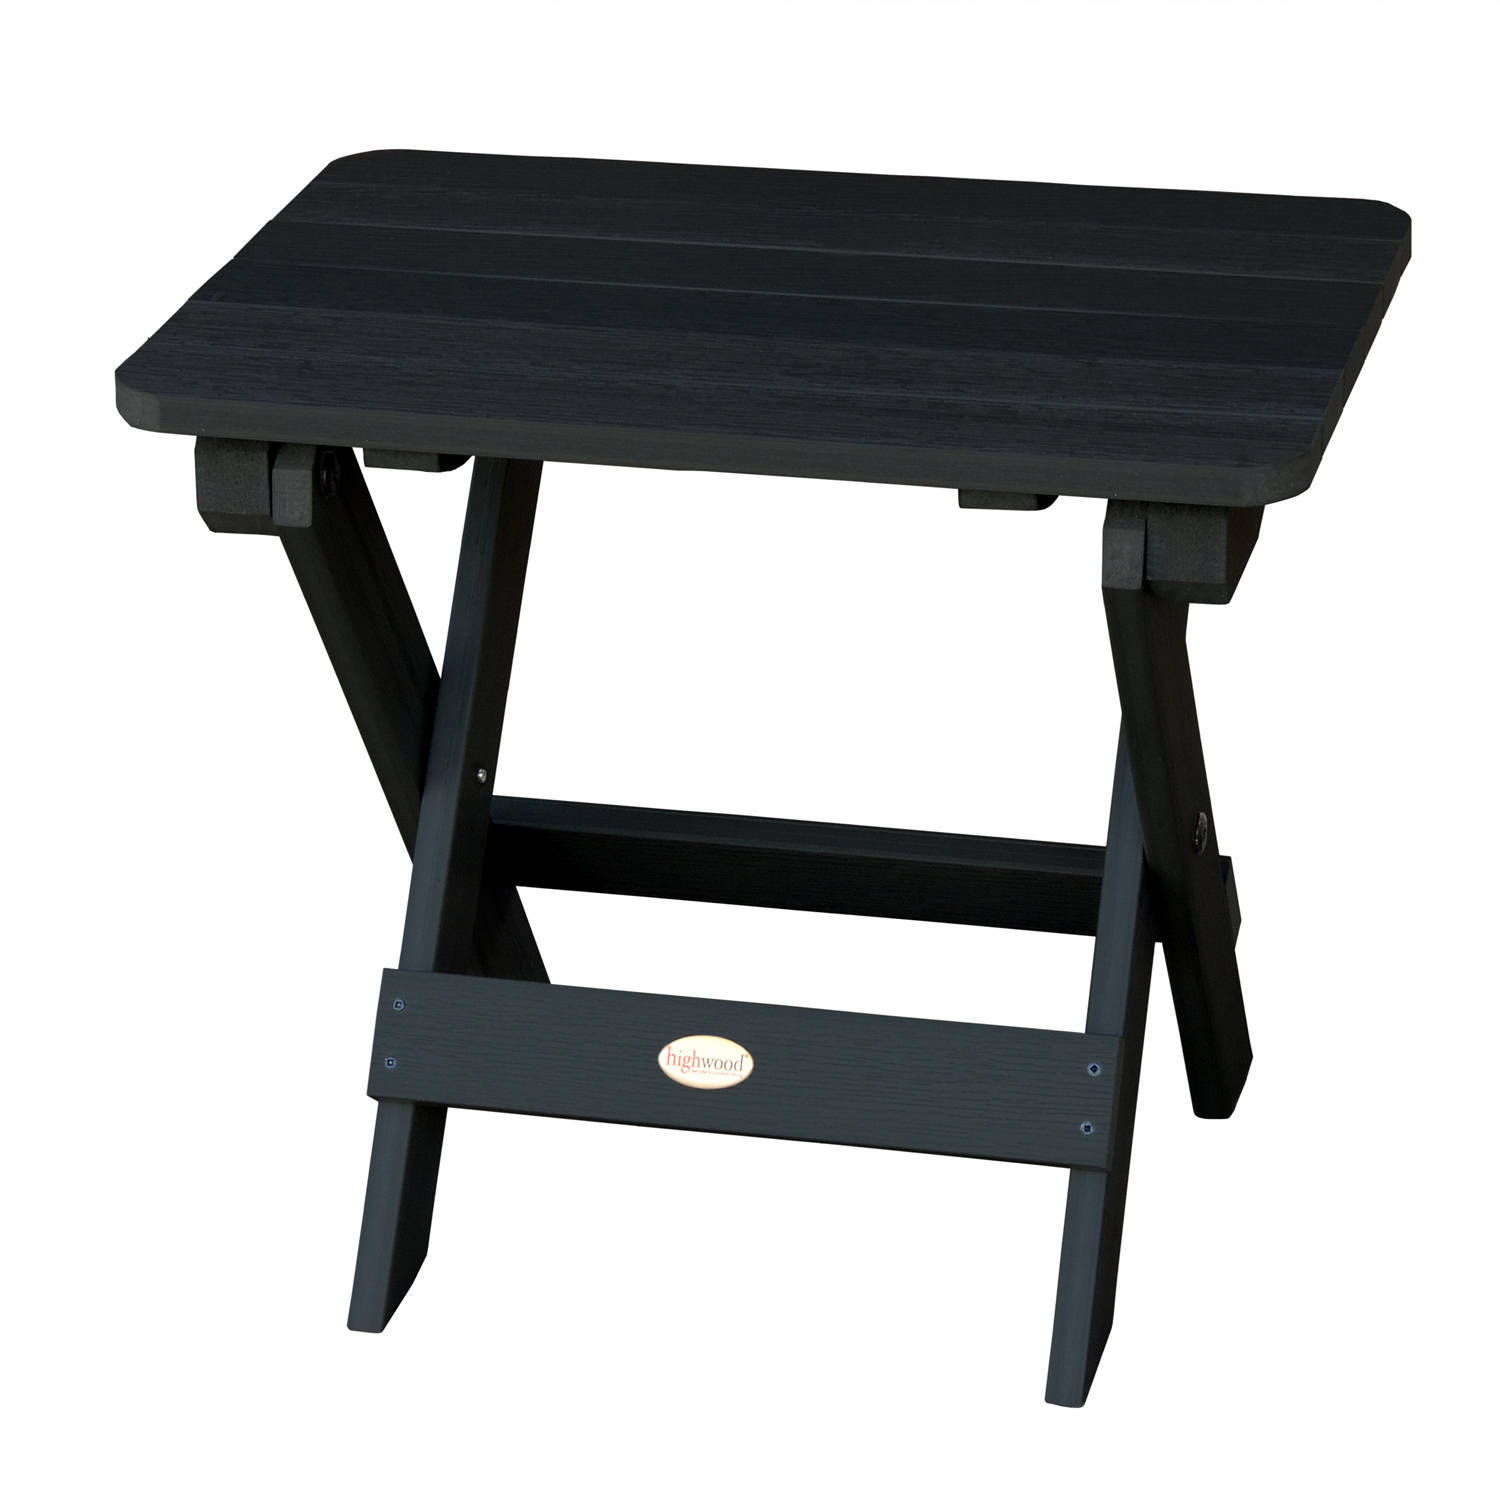 highwood® Eco-Friendly Folding Adirondack Side Table